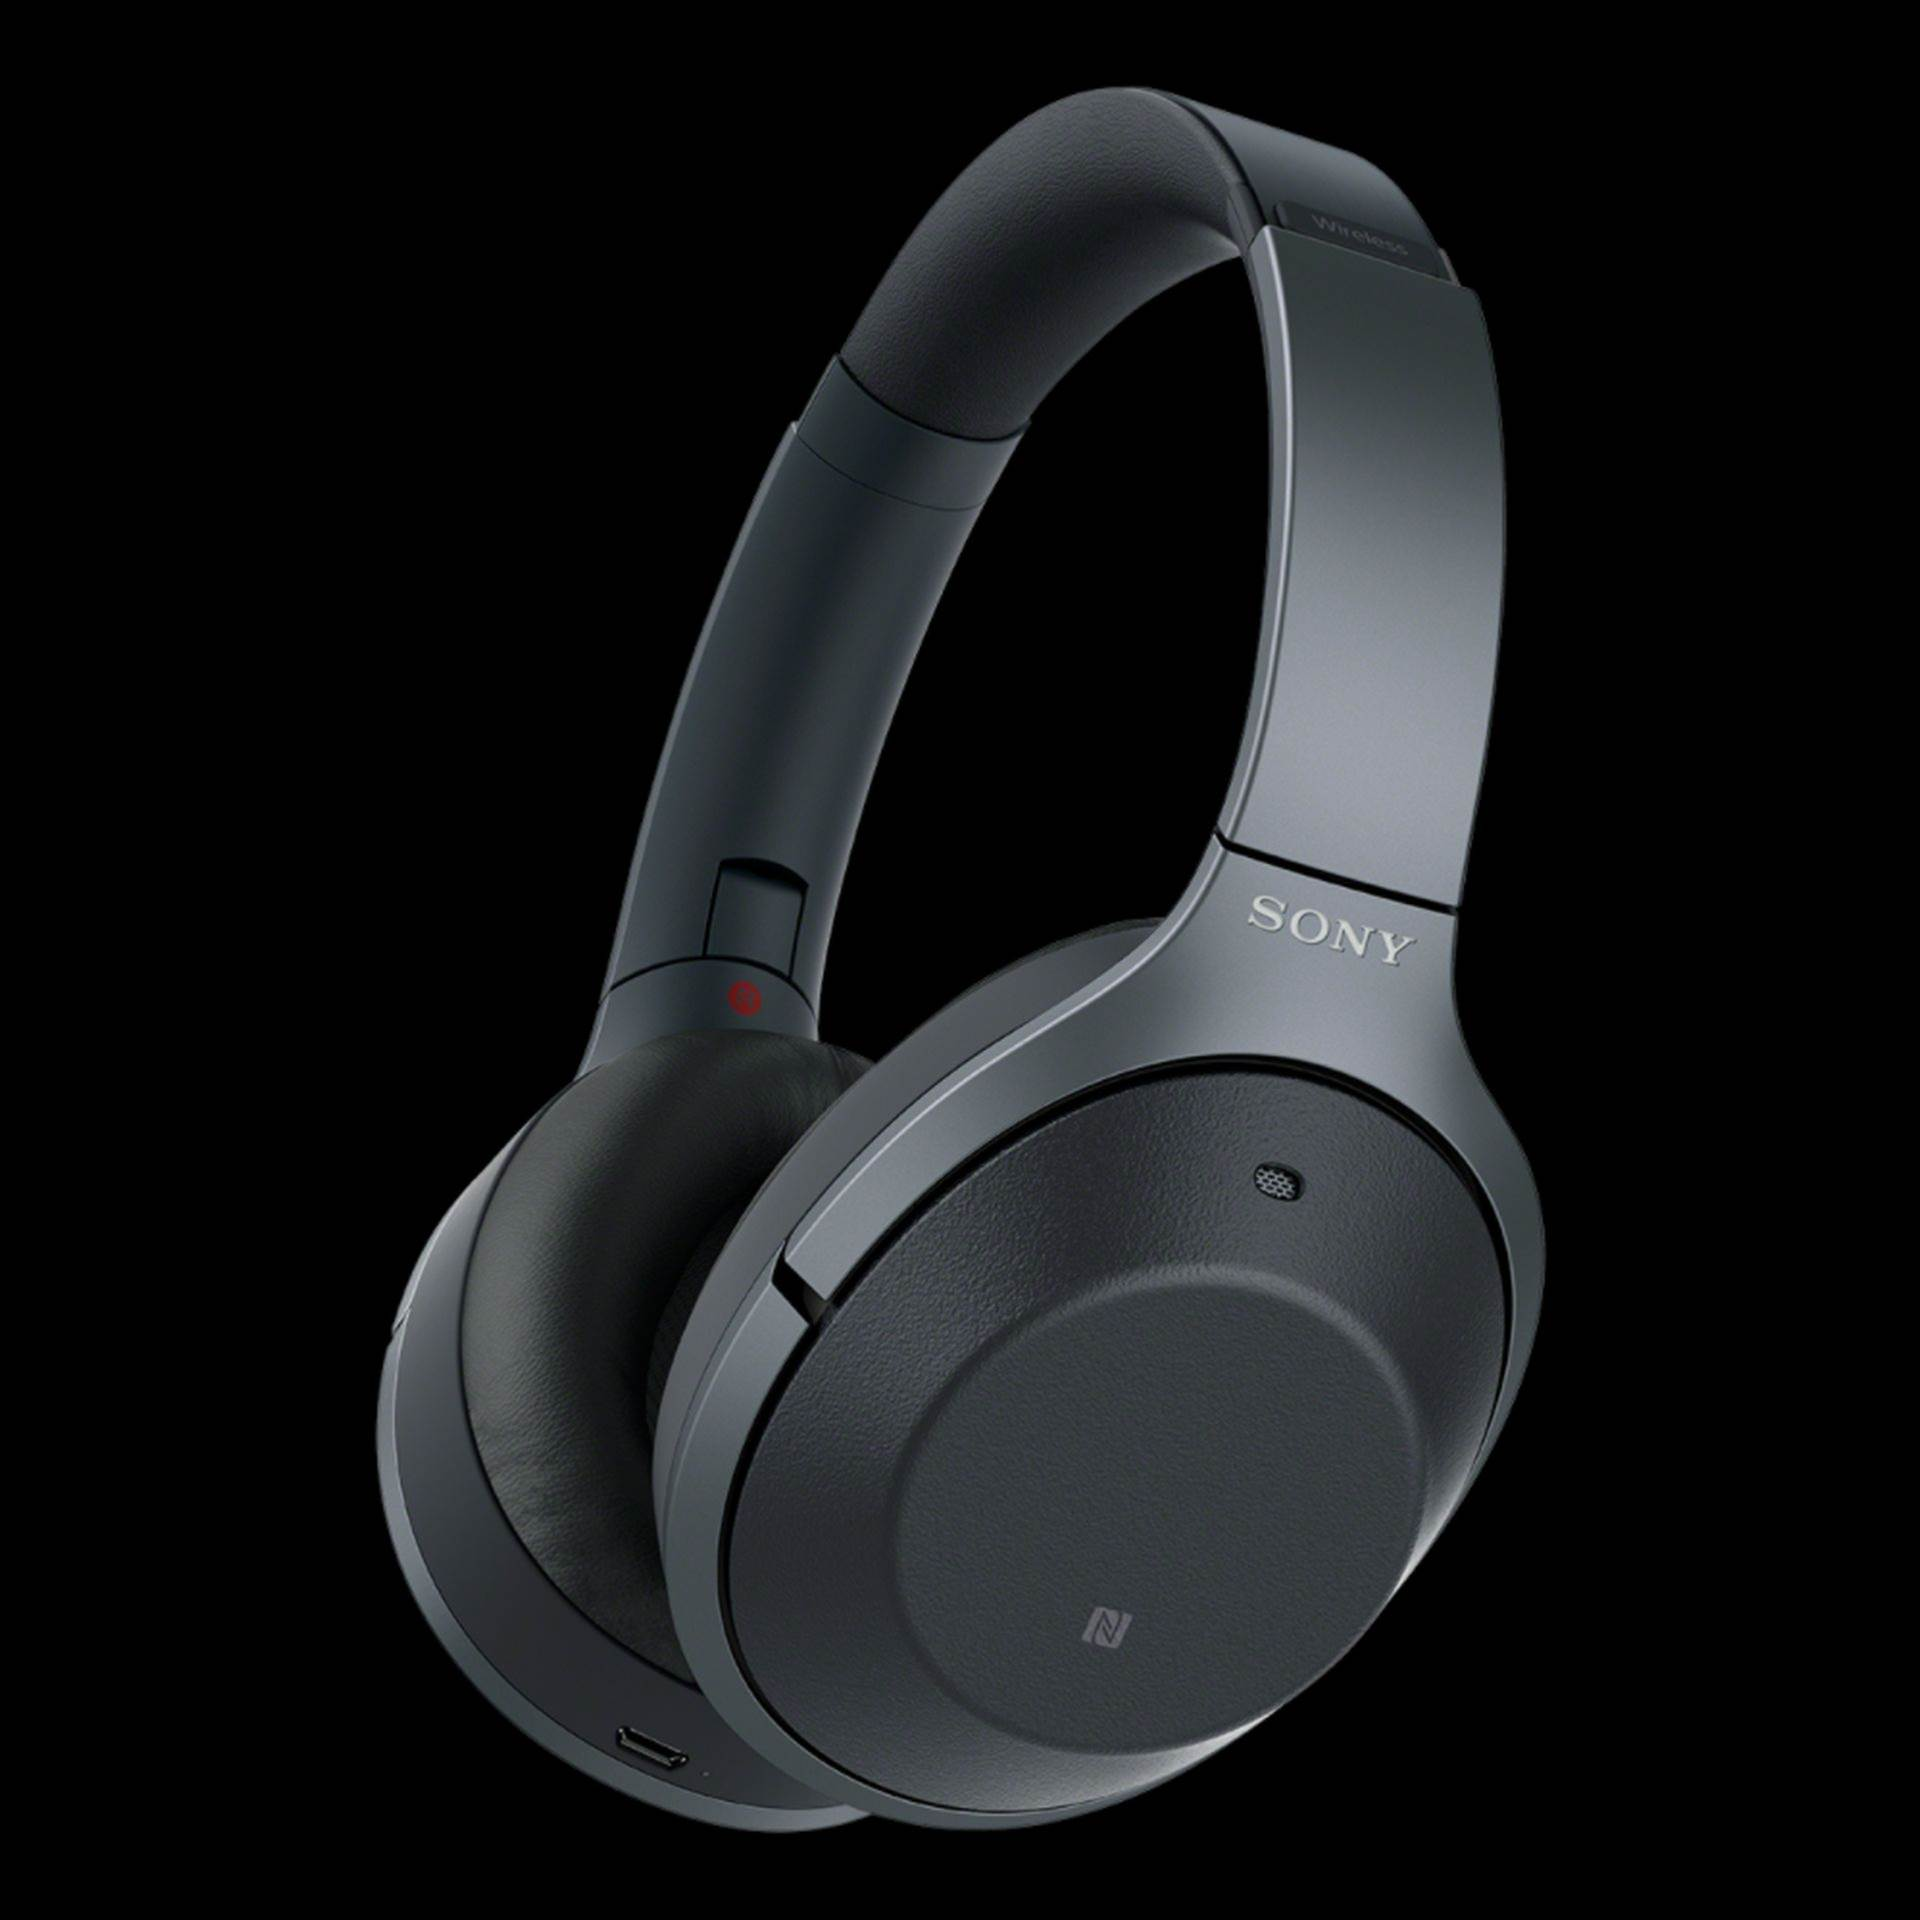 Review: Sony WH-1000XM2 Wireless Noise Cancelling Headphone